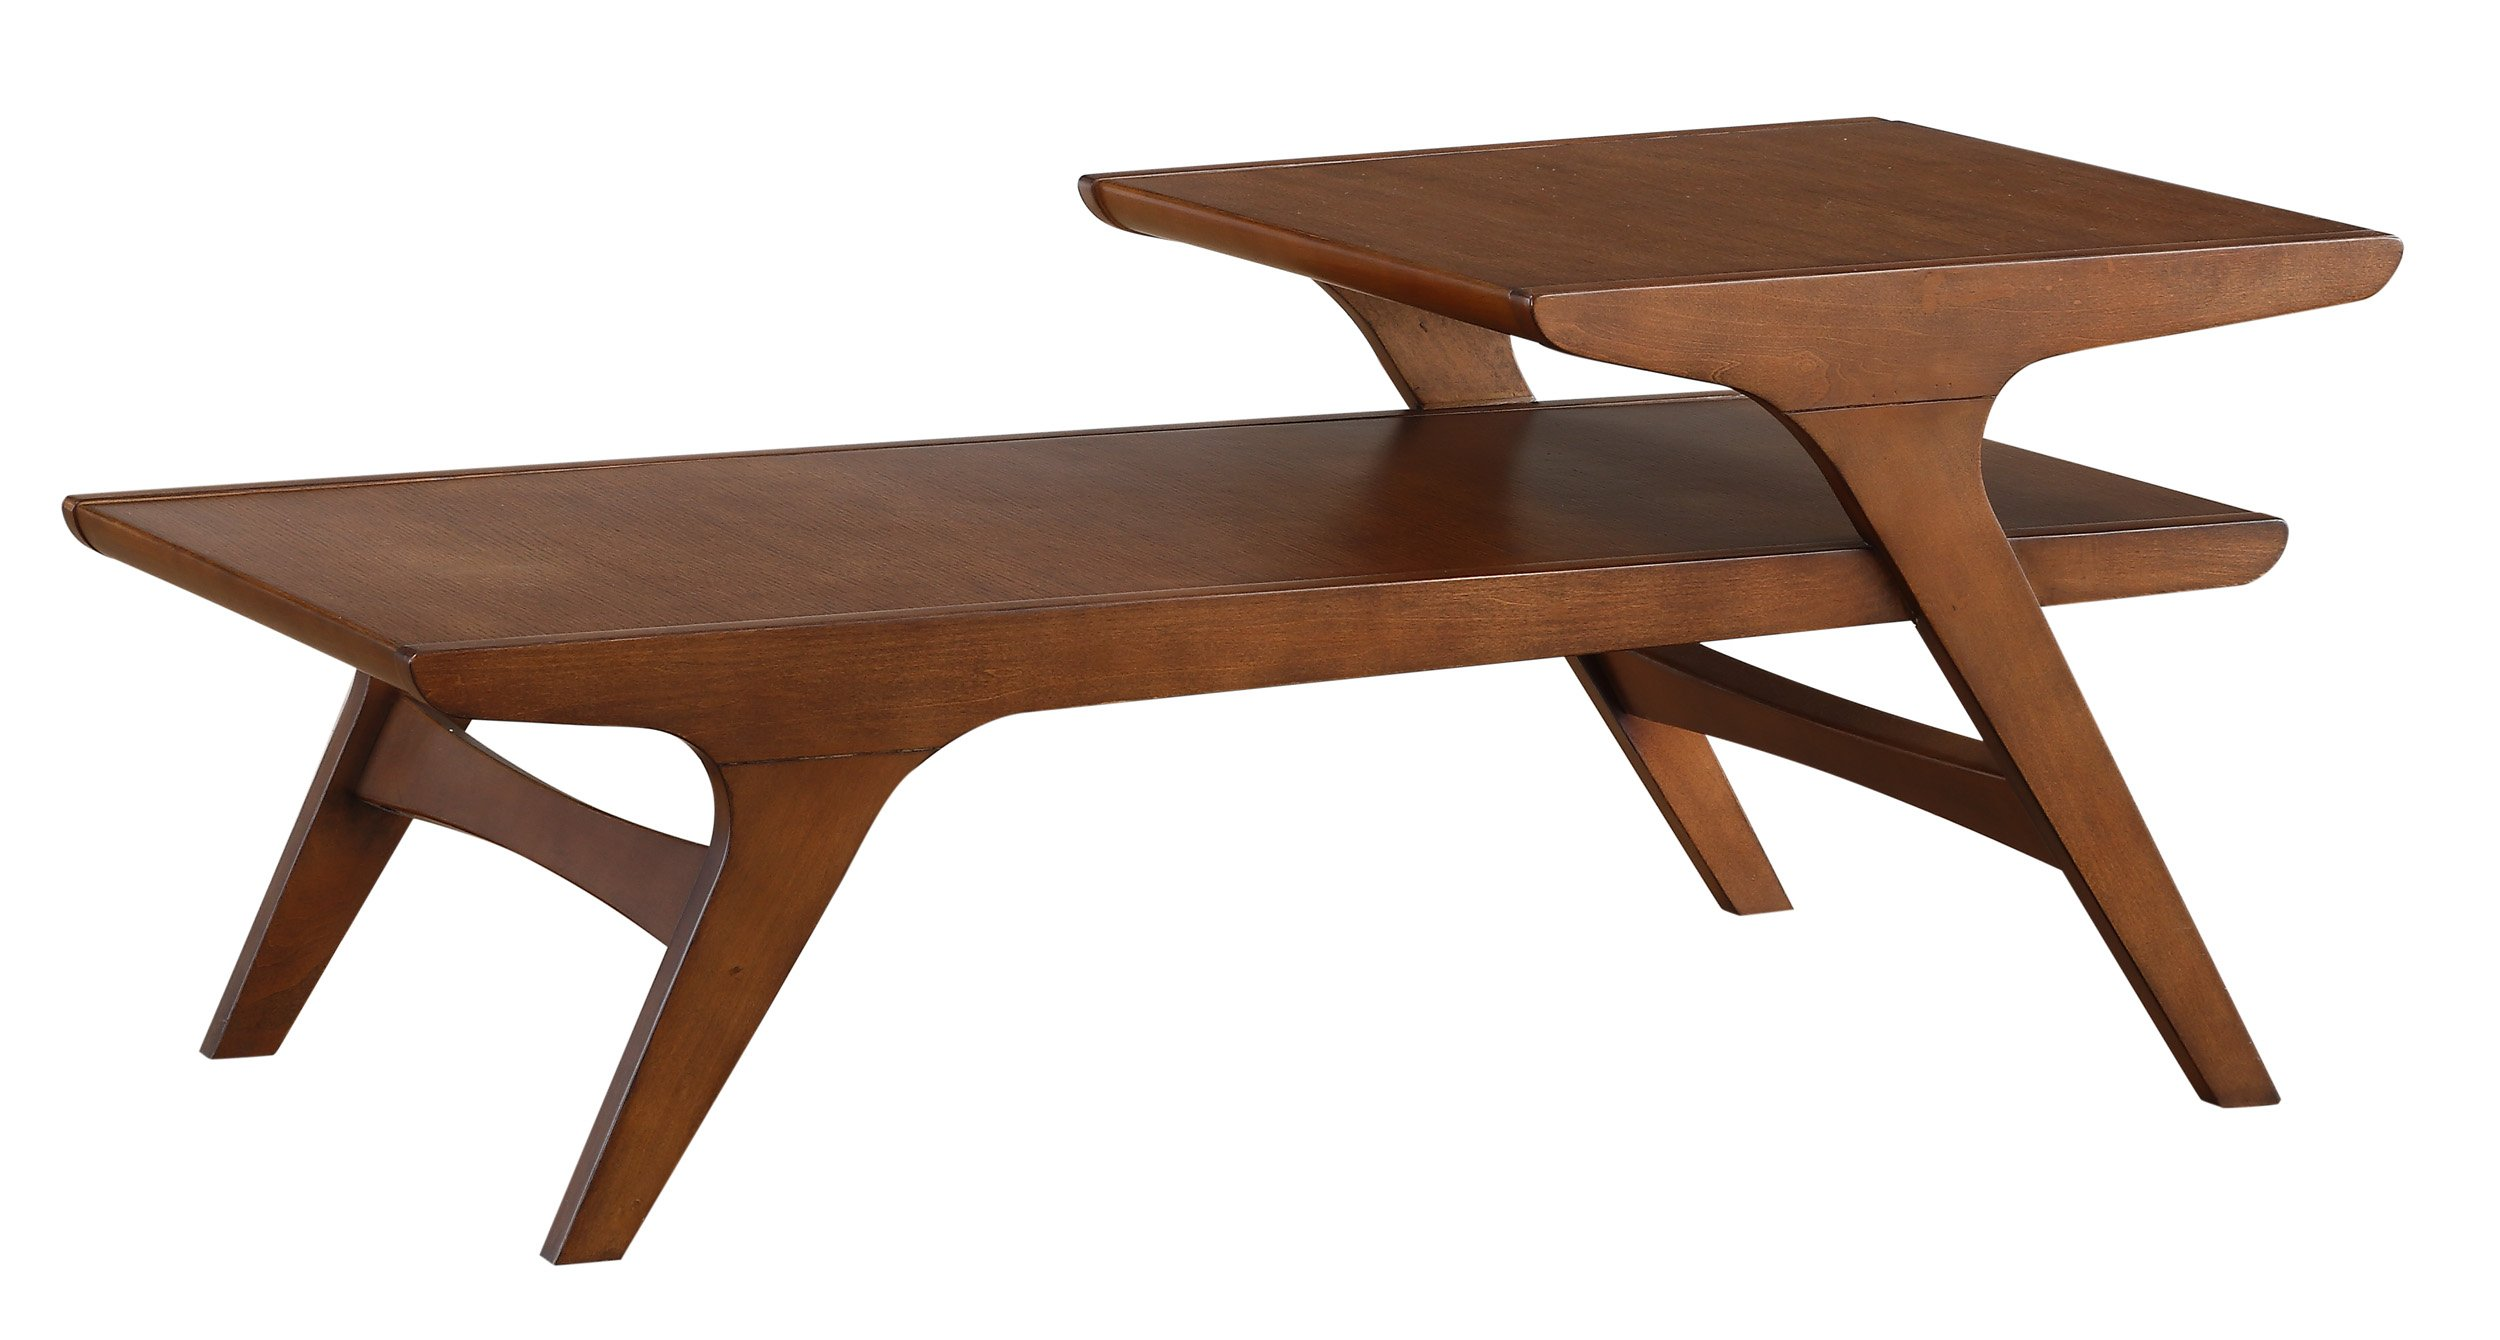 Homelegance Saluki Mid-Century Two-Tier Cocktail/Coffee Table, Cherry by Homelegance